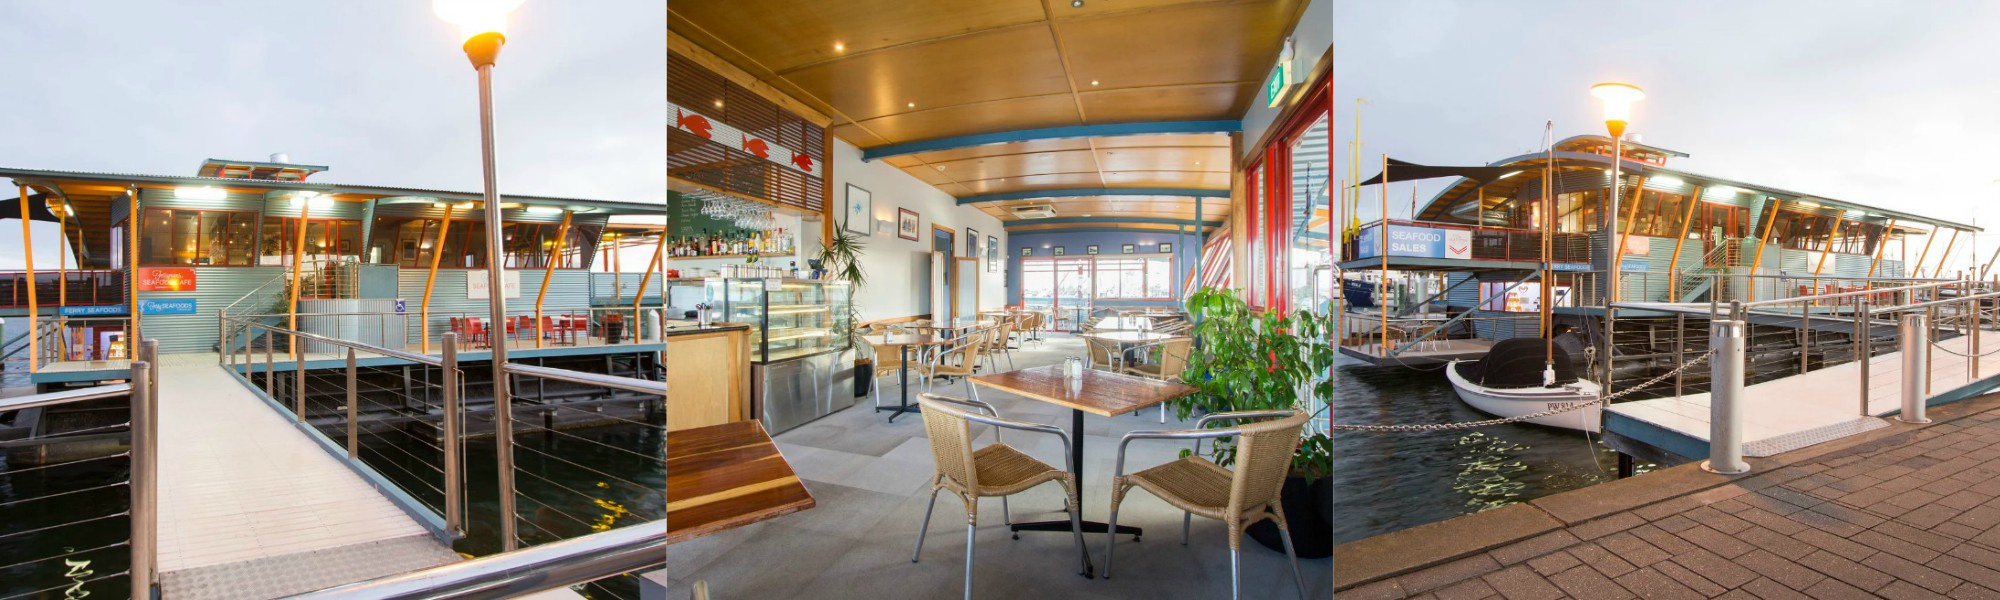 Floating Seafood Cafe + Freehold T/over $1.0-$1.5 Million p.a! (Our Ref: V1602)